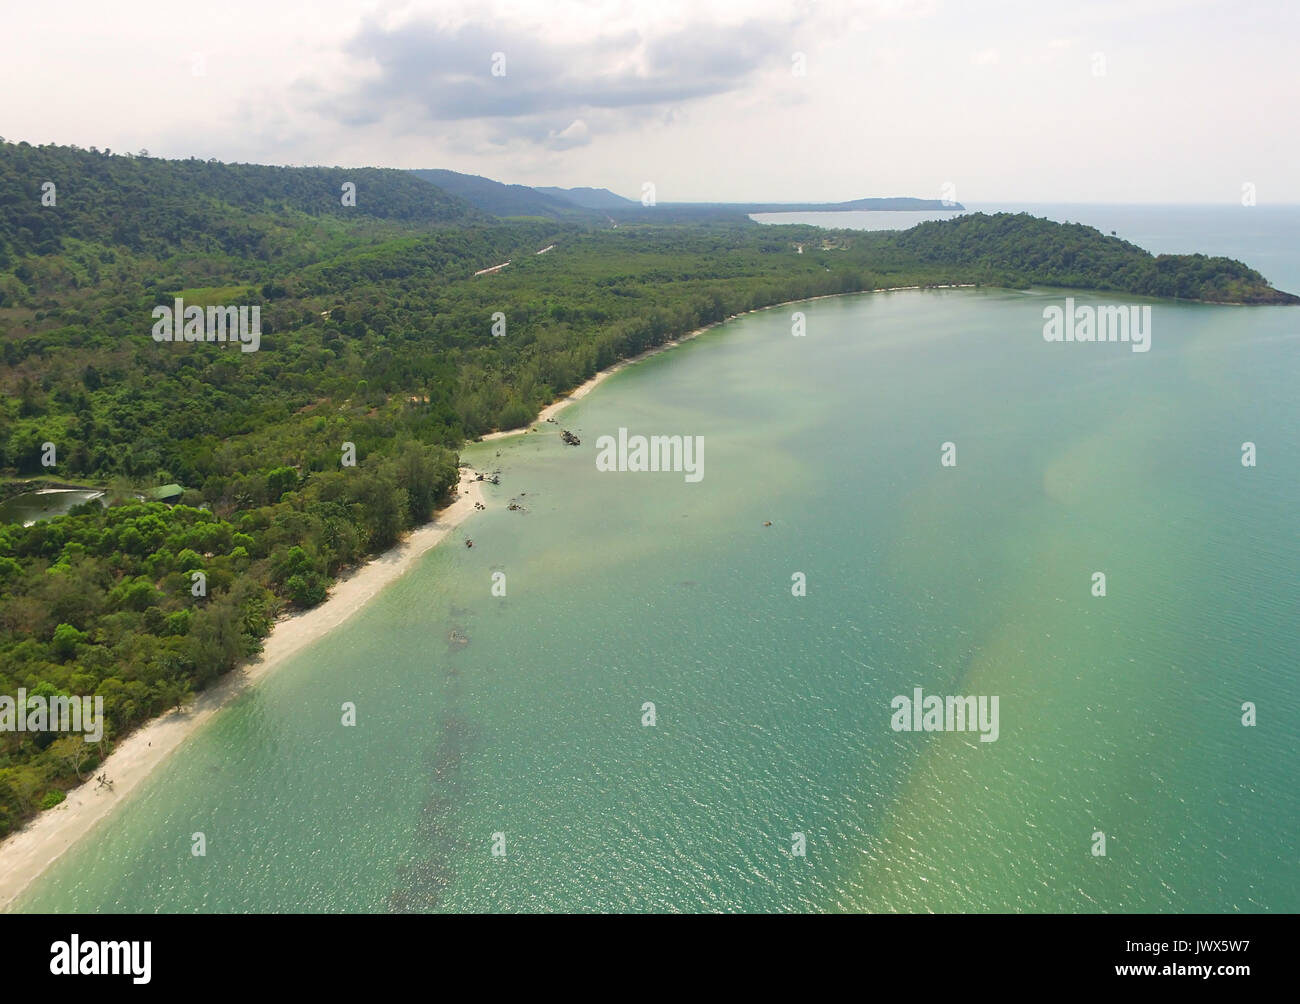 Aerial bird's eye view of emerald green placid sea and the Gulf of Thailand's coast by drone - Stock Image